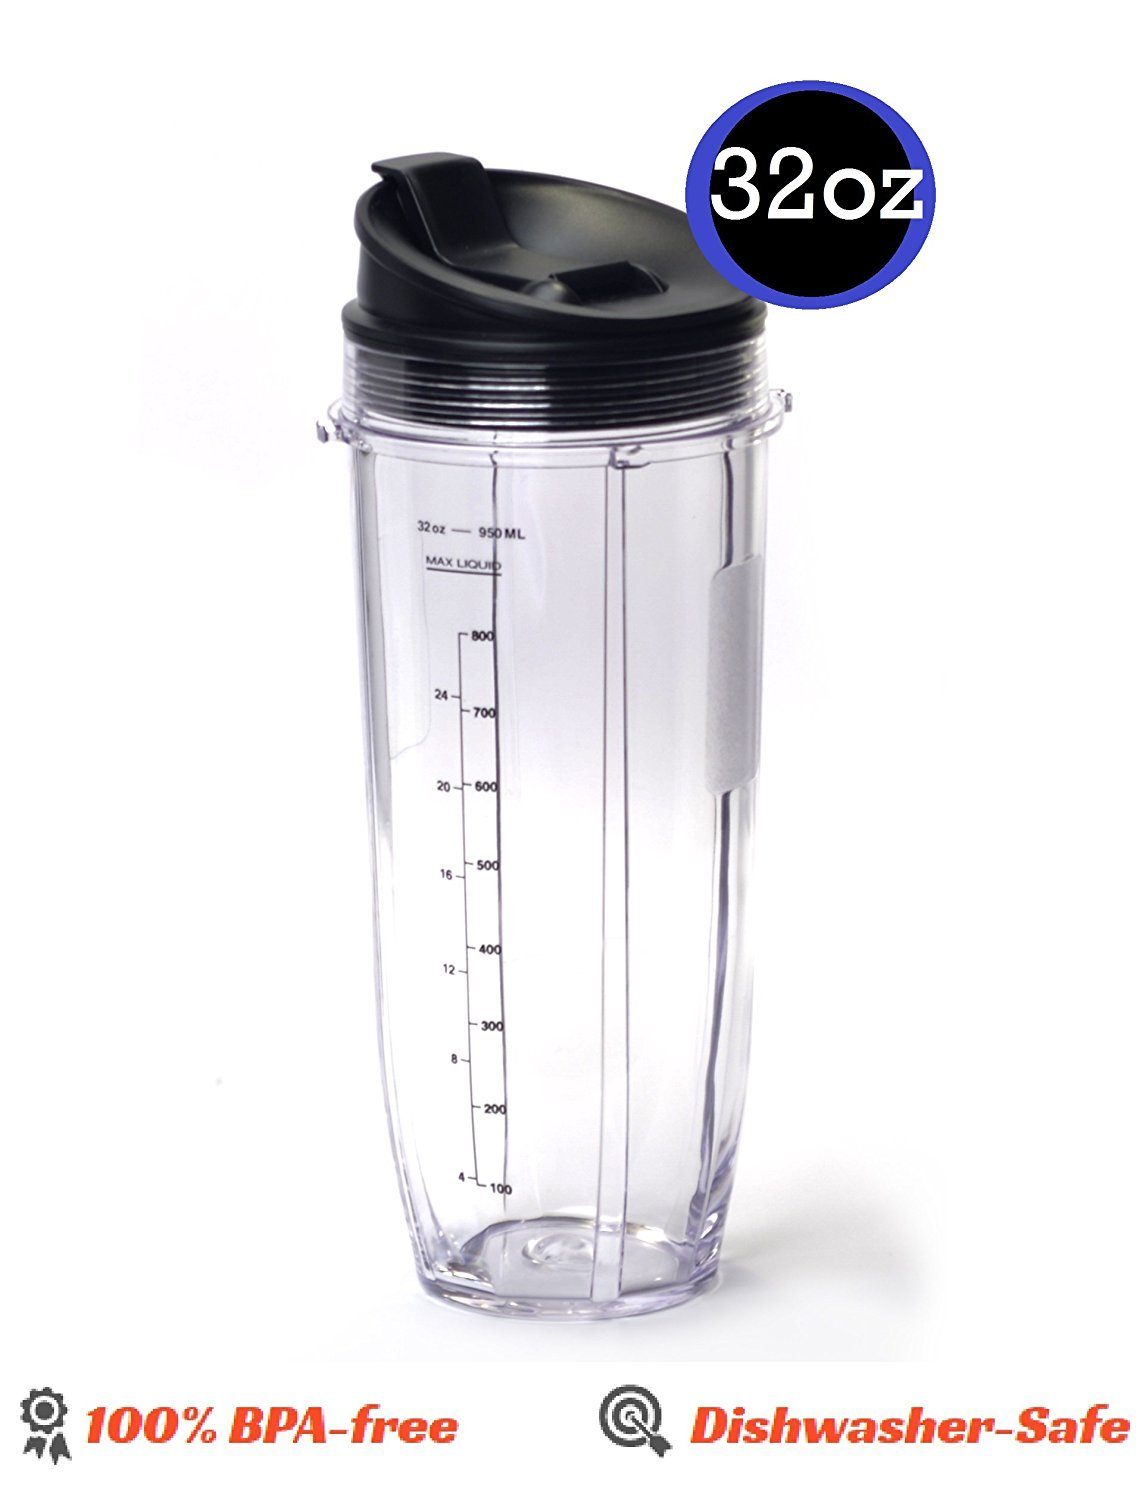 32OZ Large Multi-Serve Cup with Sip And Seal Lid replacement part for Nutri NutriNinja Auto iQ